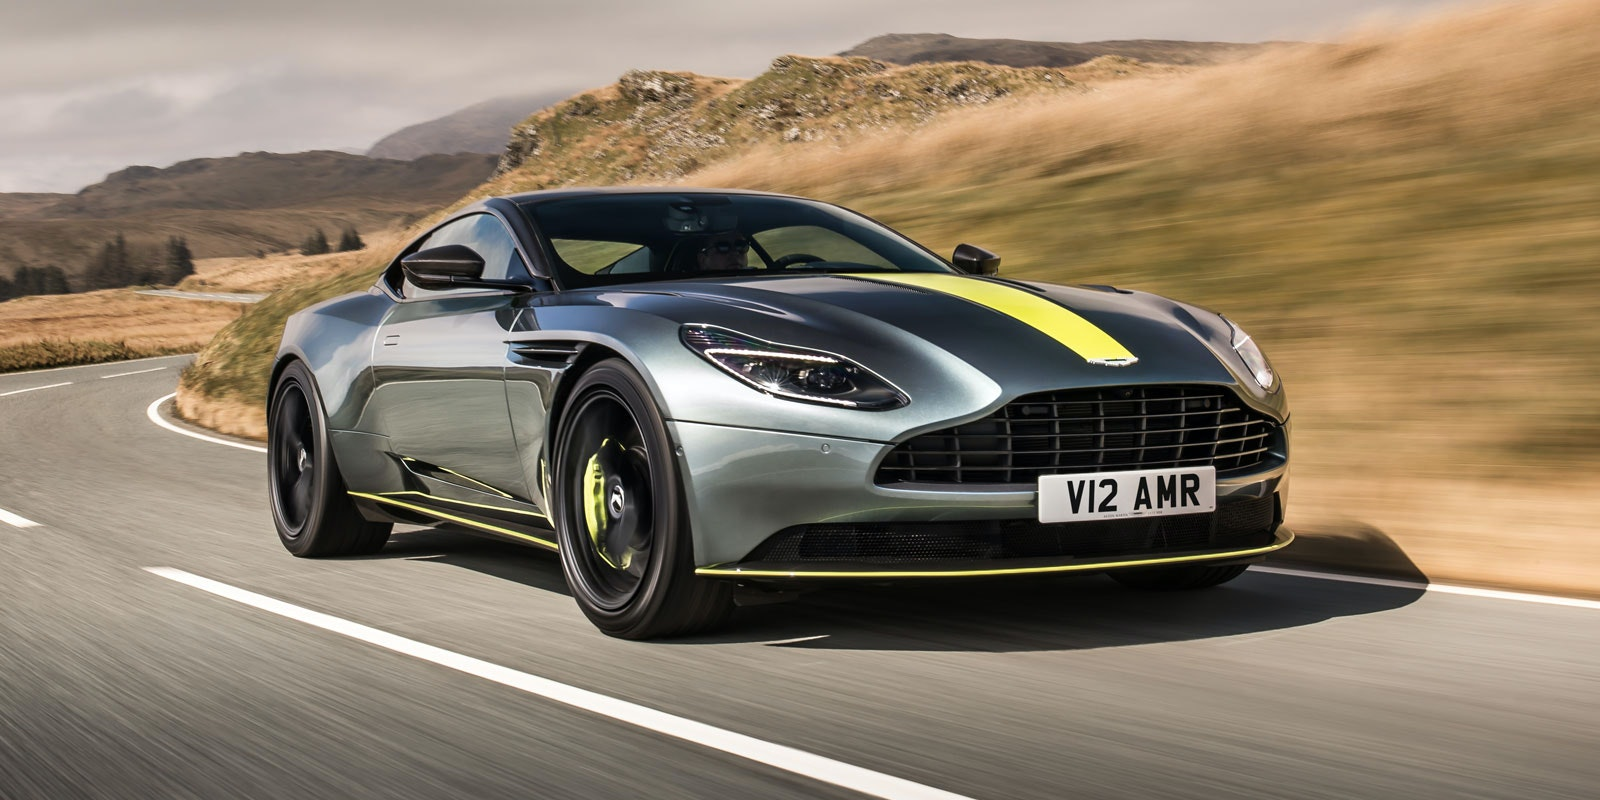 2018 Aston Martin Db11 Amr Price Specs And Release Date Carwow